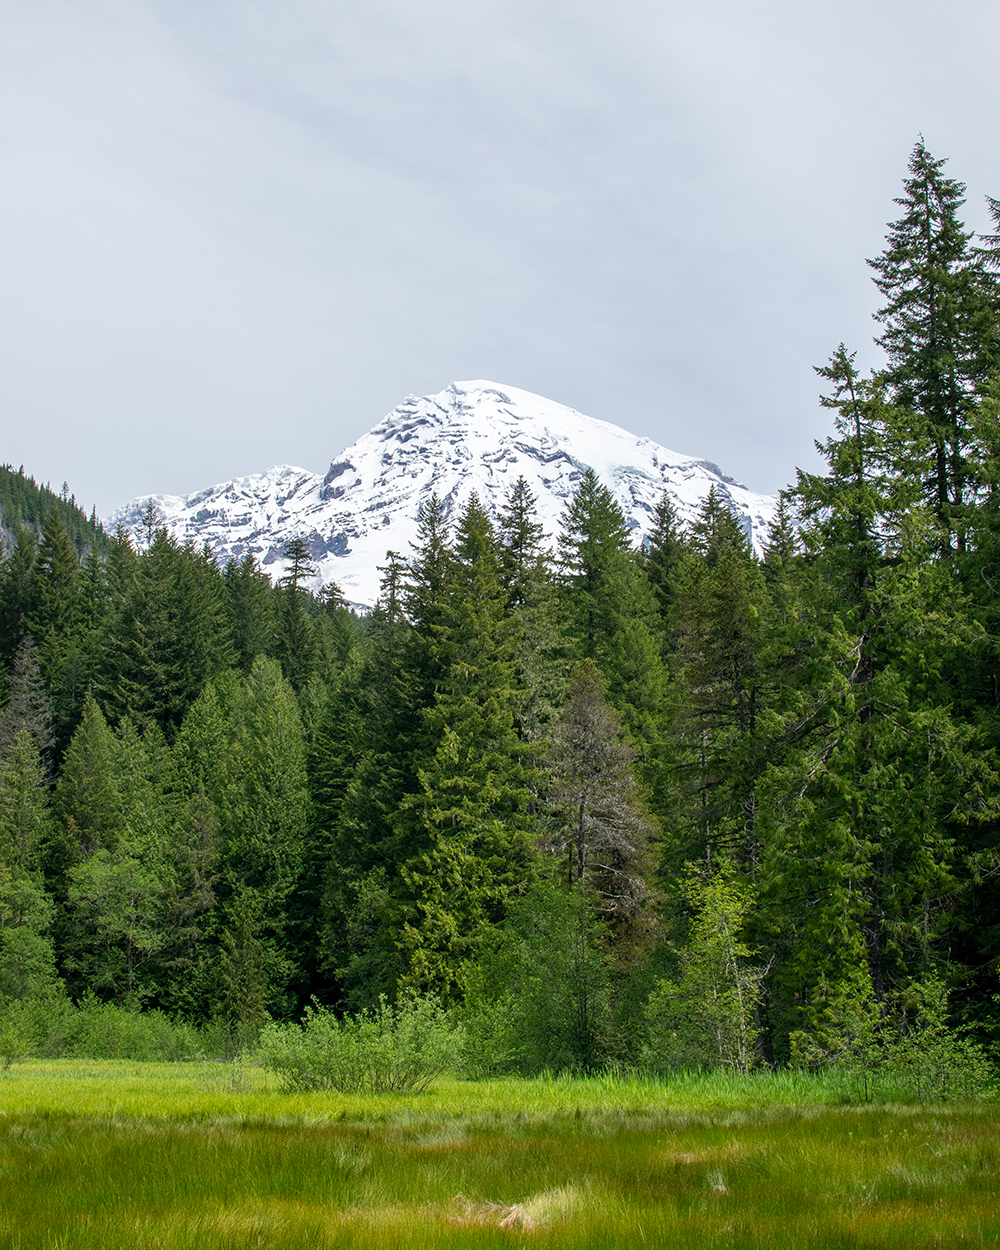 view of snowy mountain peak surrounded by pine trees from a meadow in mount rainier national park washington